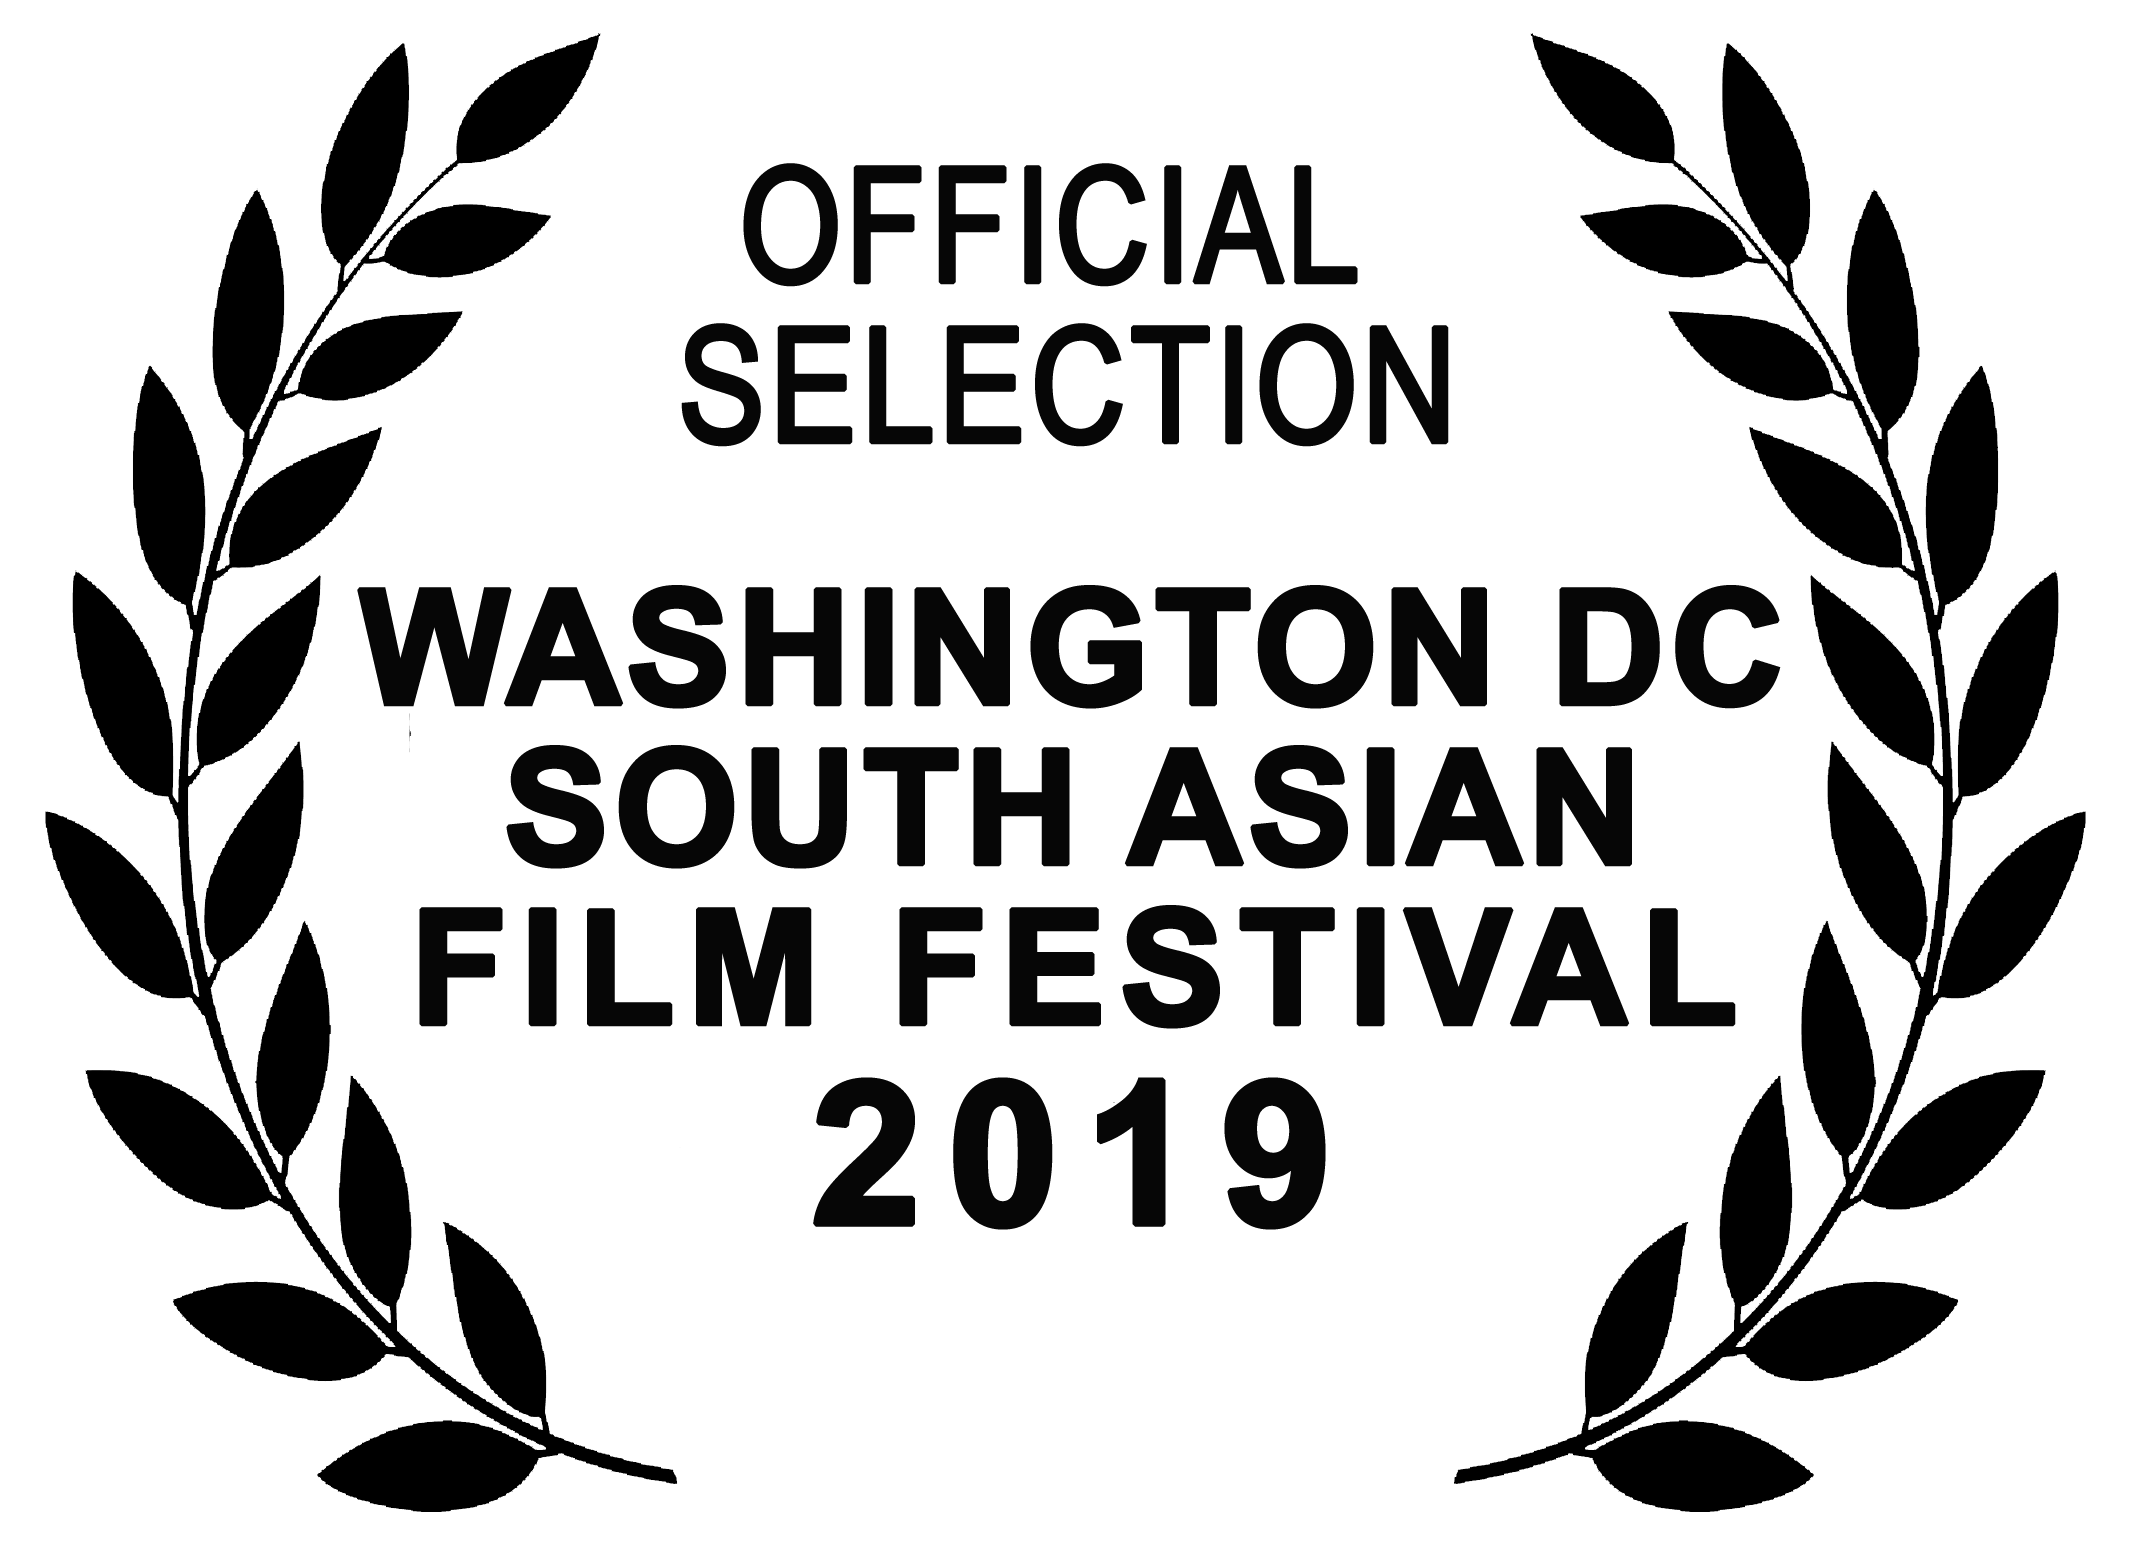 https://tinathemovie.com/wp-content/uploads/2019/09/DCSAFF-LAUREL-Official-Selection-2019-BW-1.png